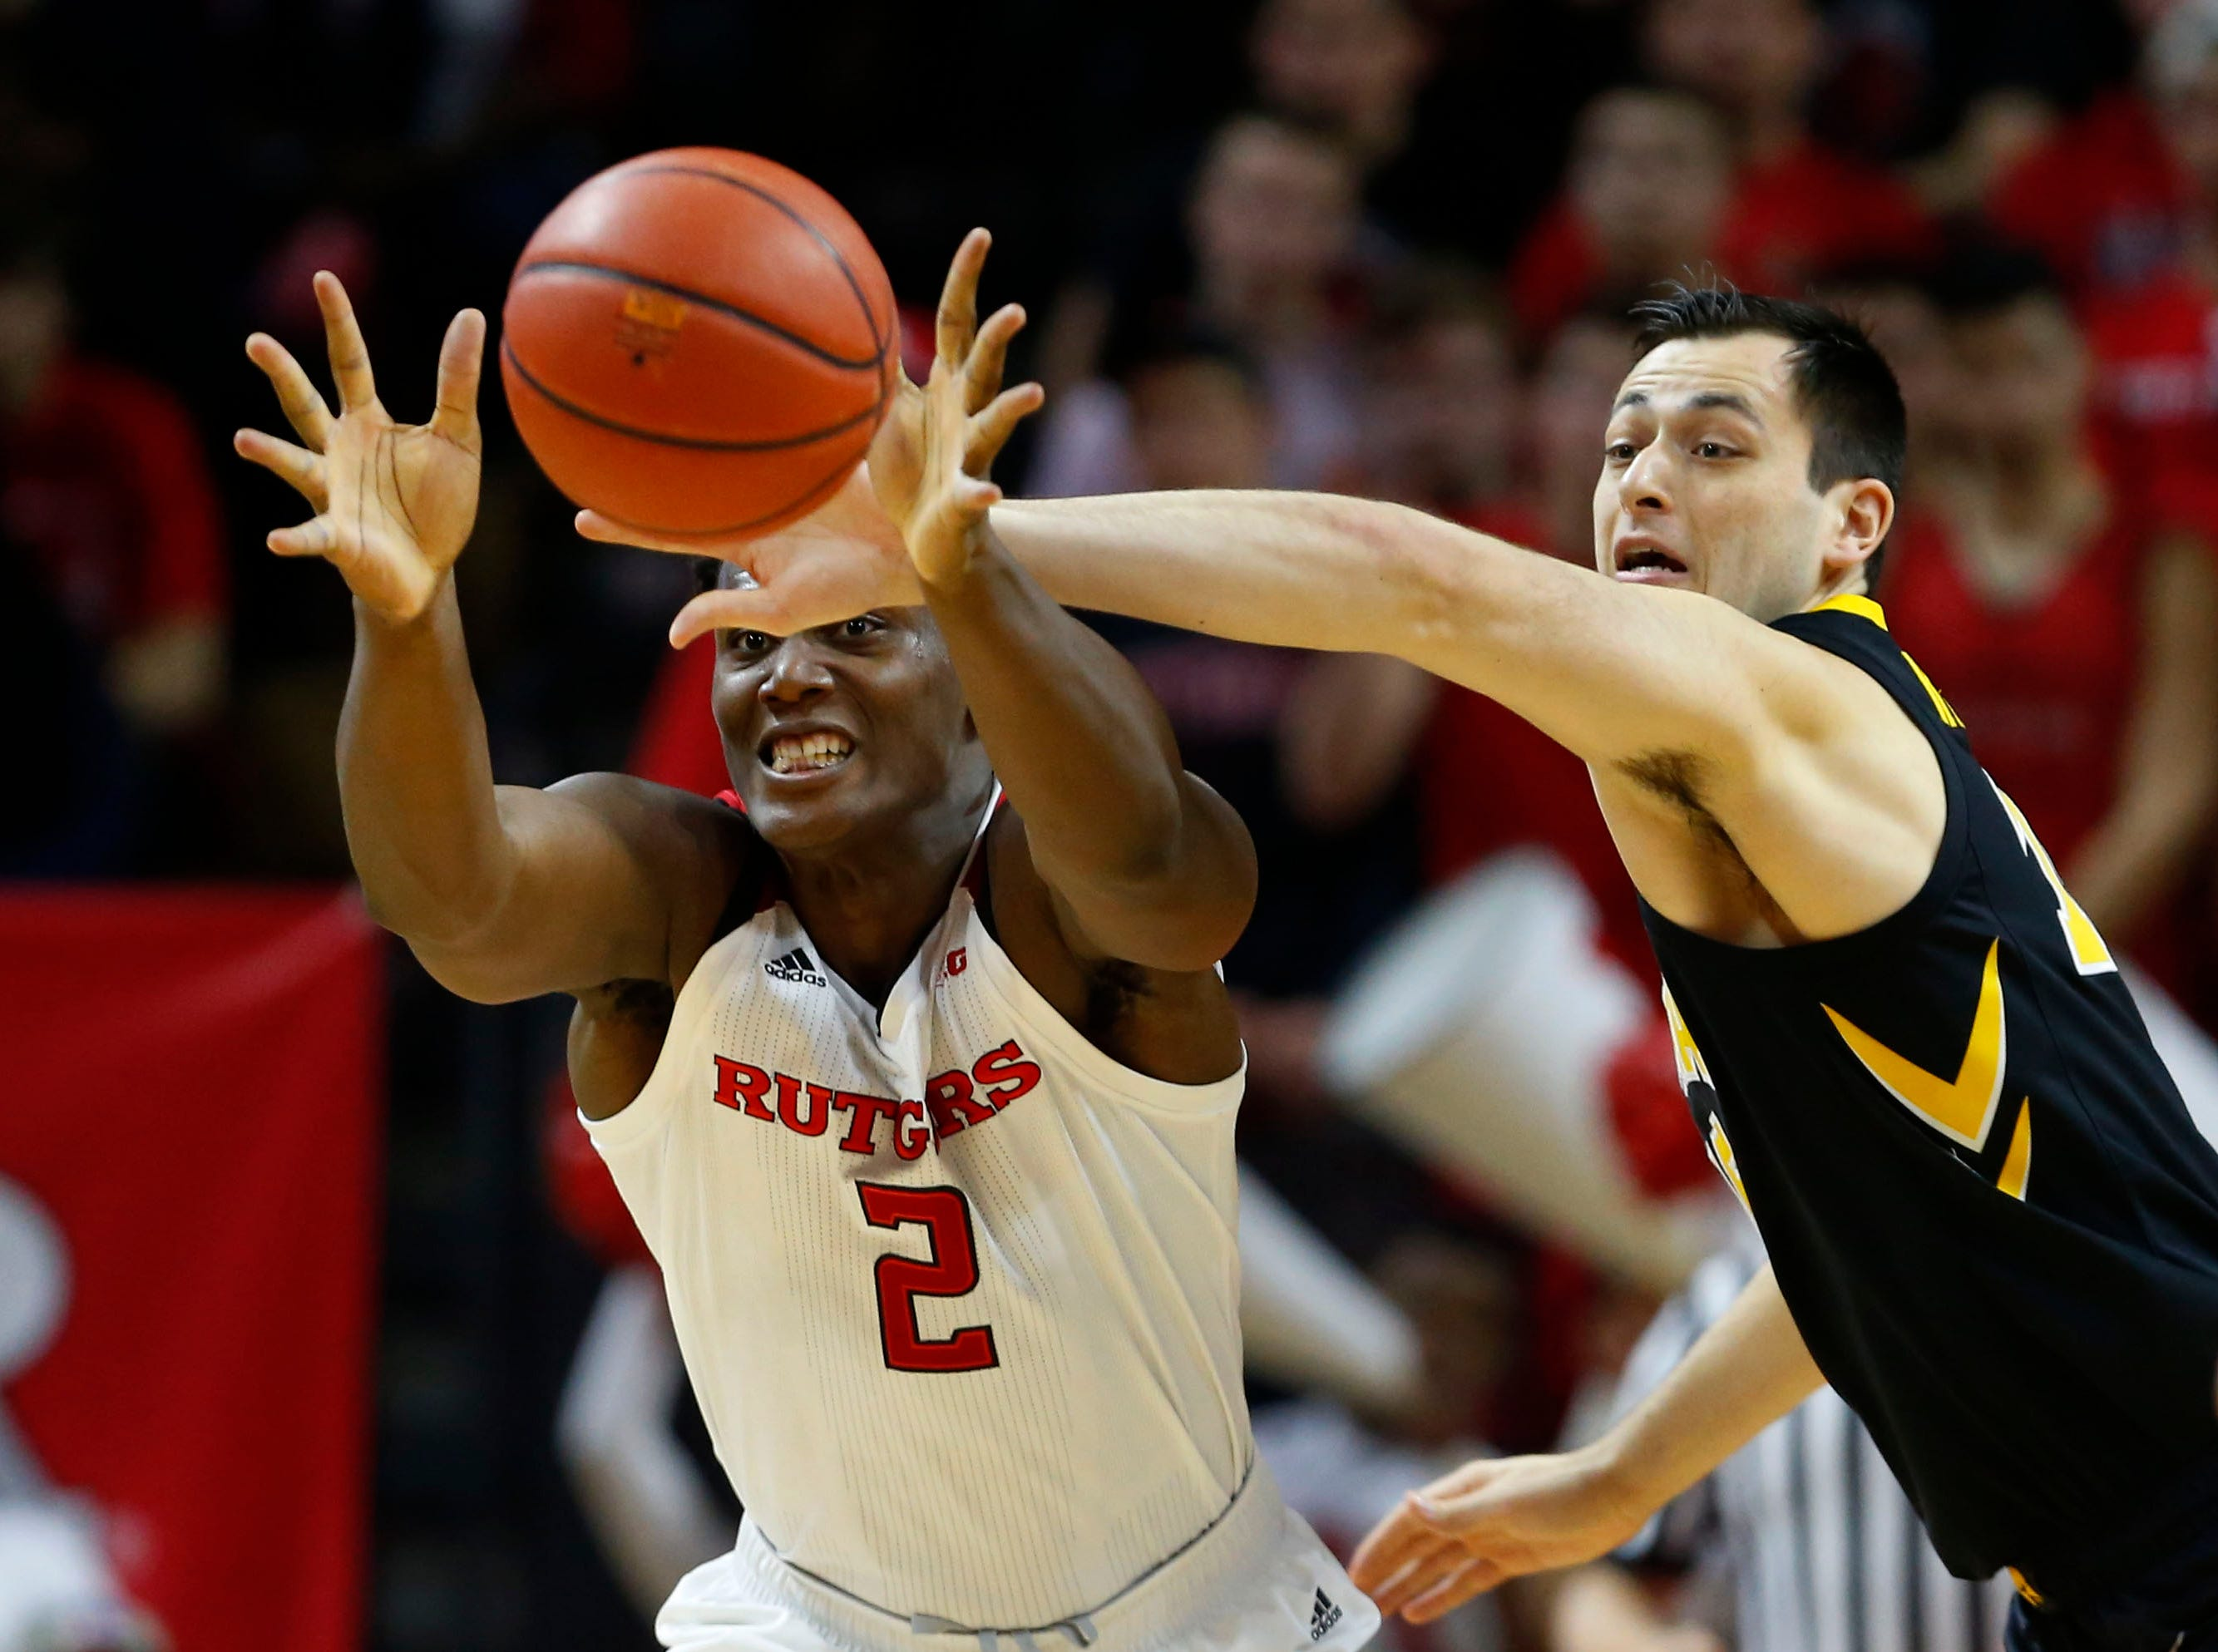 Iowa Hawkeyes forward Ryan Kriener (15) defends against Rutgers Scarlet Knights center Shaquille Doorson (2) during the first half at Rutgers Athletic Center (RAC). Mandatory Credit: Noah K. Murray-USA TODAY Sports